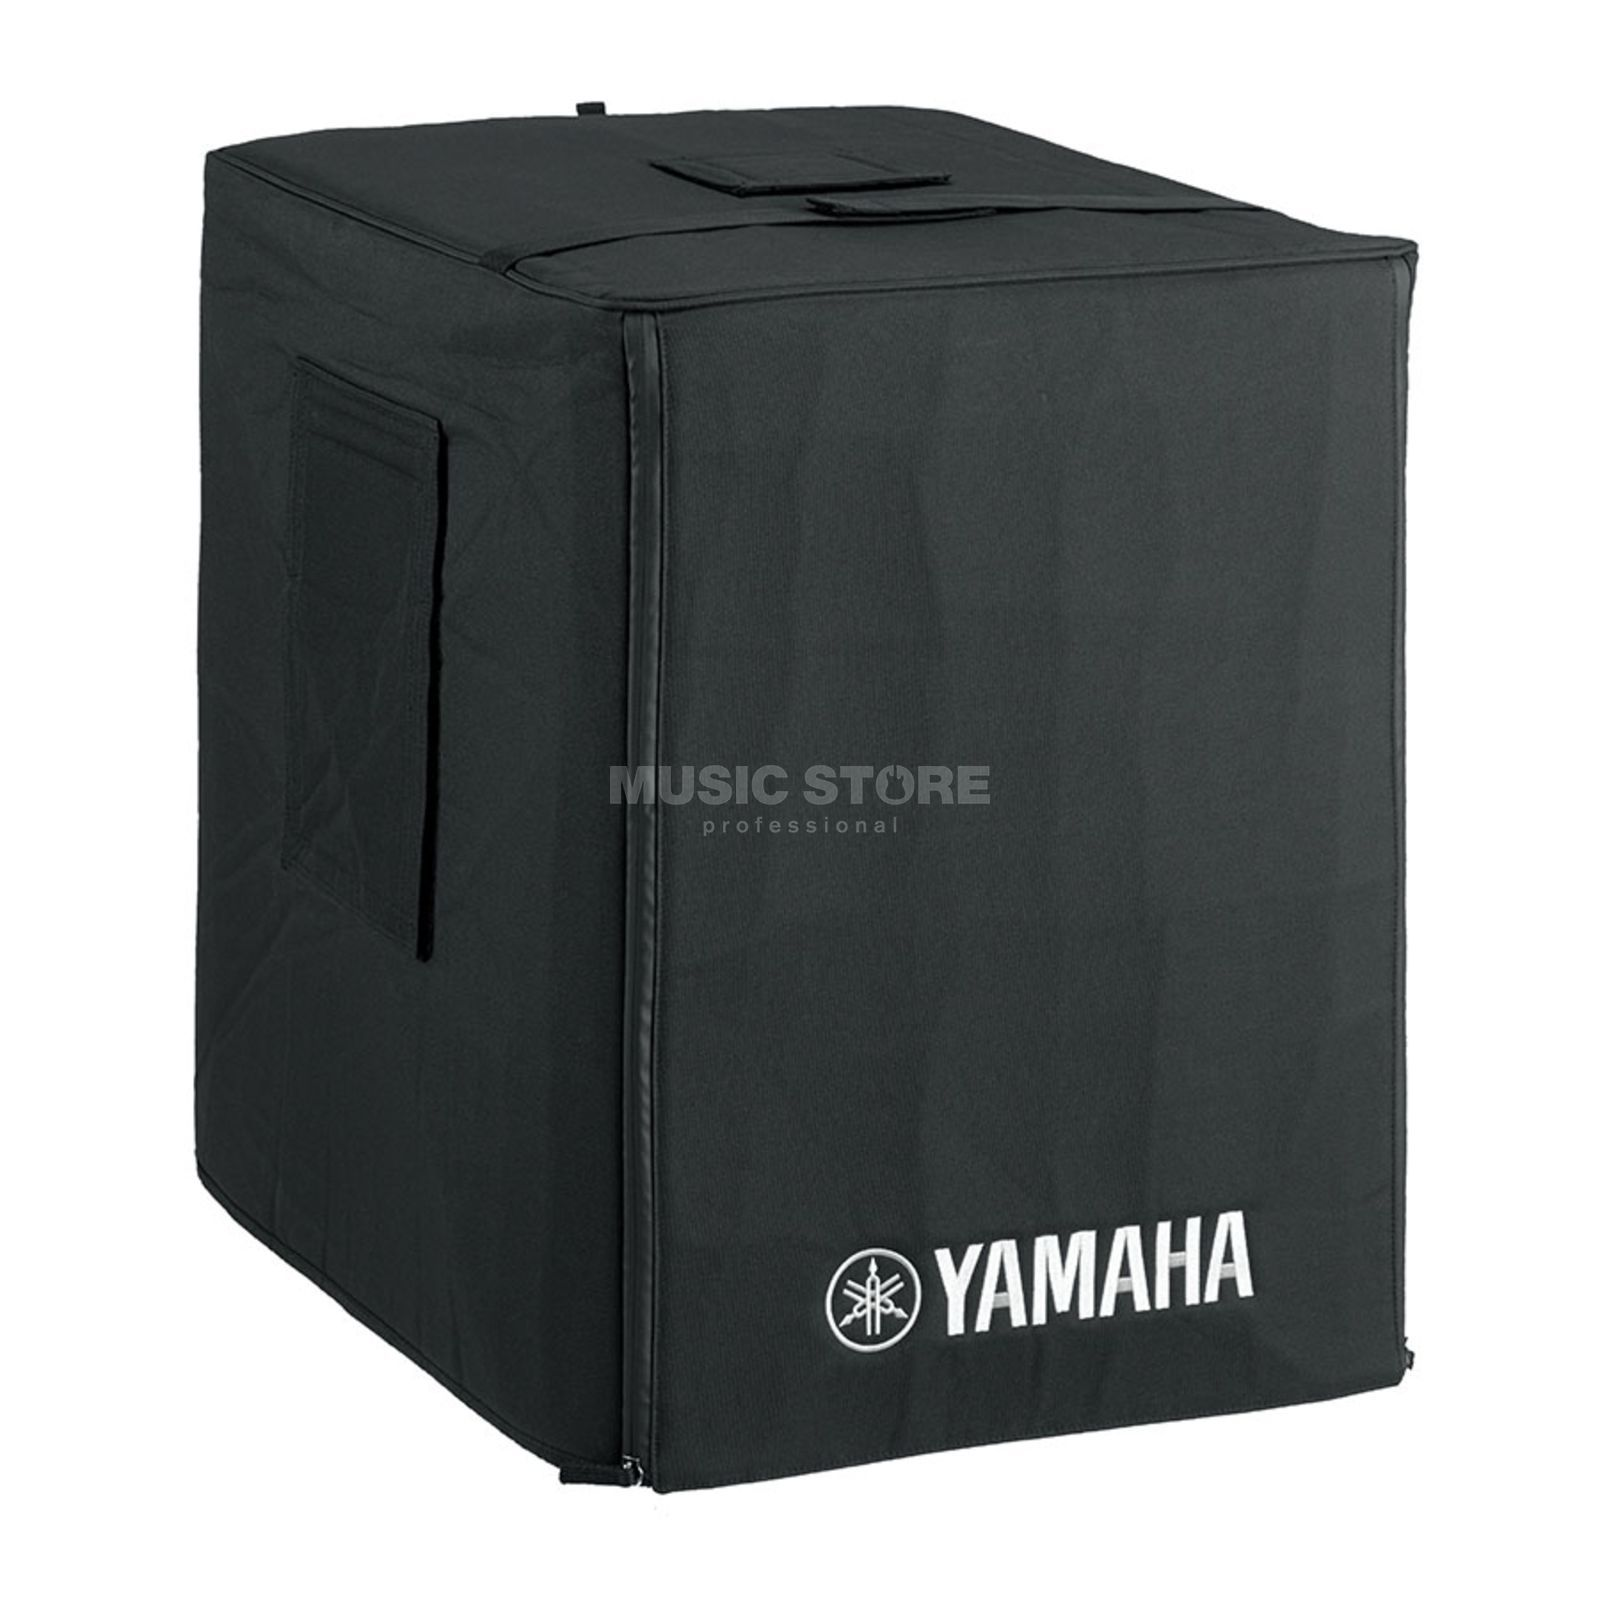 Yamaha SC DXS 15 Softcover Protective Cover for DXS 15 Produktbillede